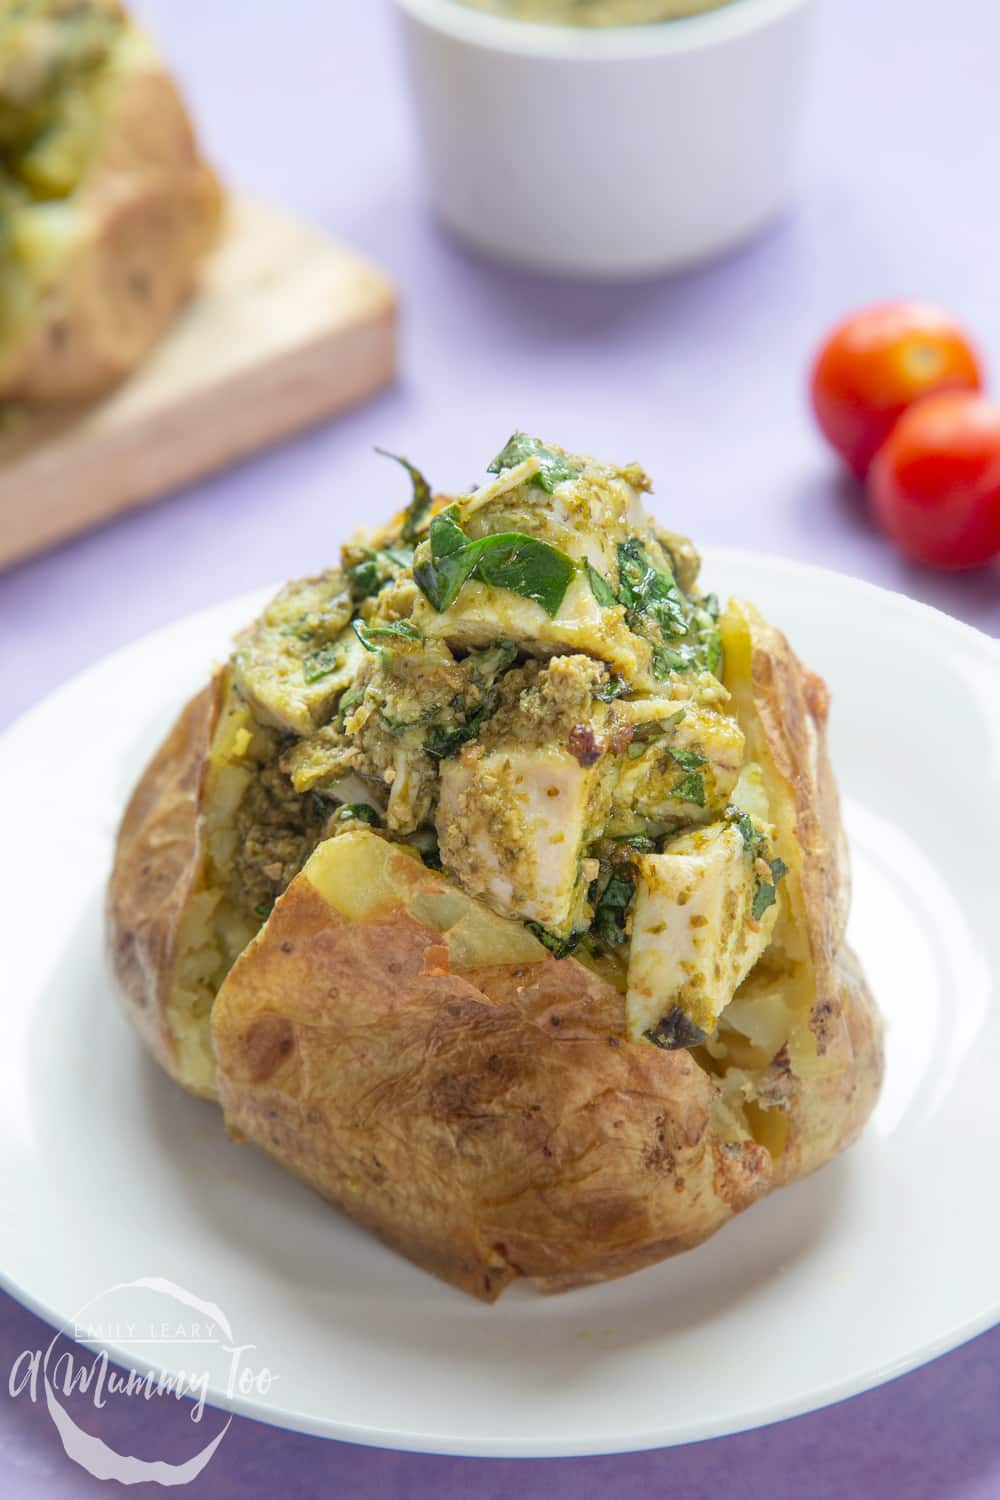 Jacket potato with cheesy pesto chicken on a white plate. The potato is piled high with a pesto, spinach cheese and chicken mix.